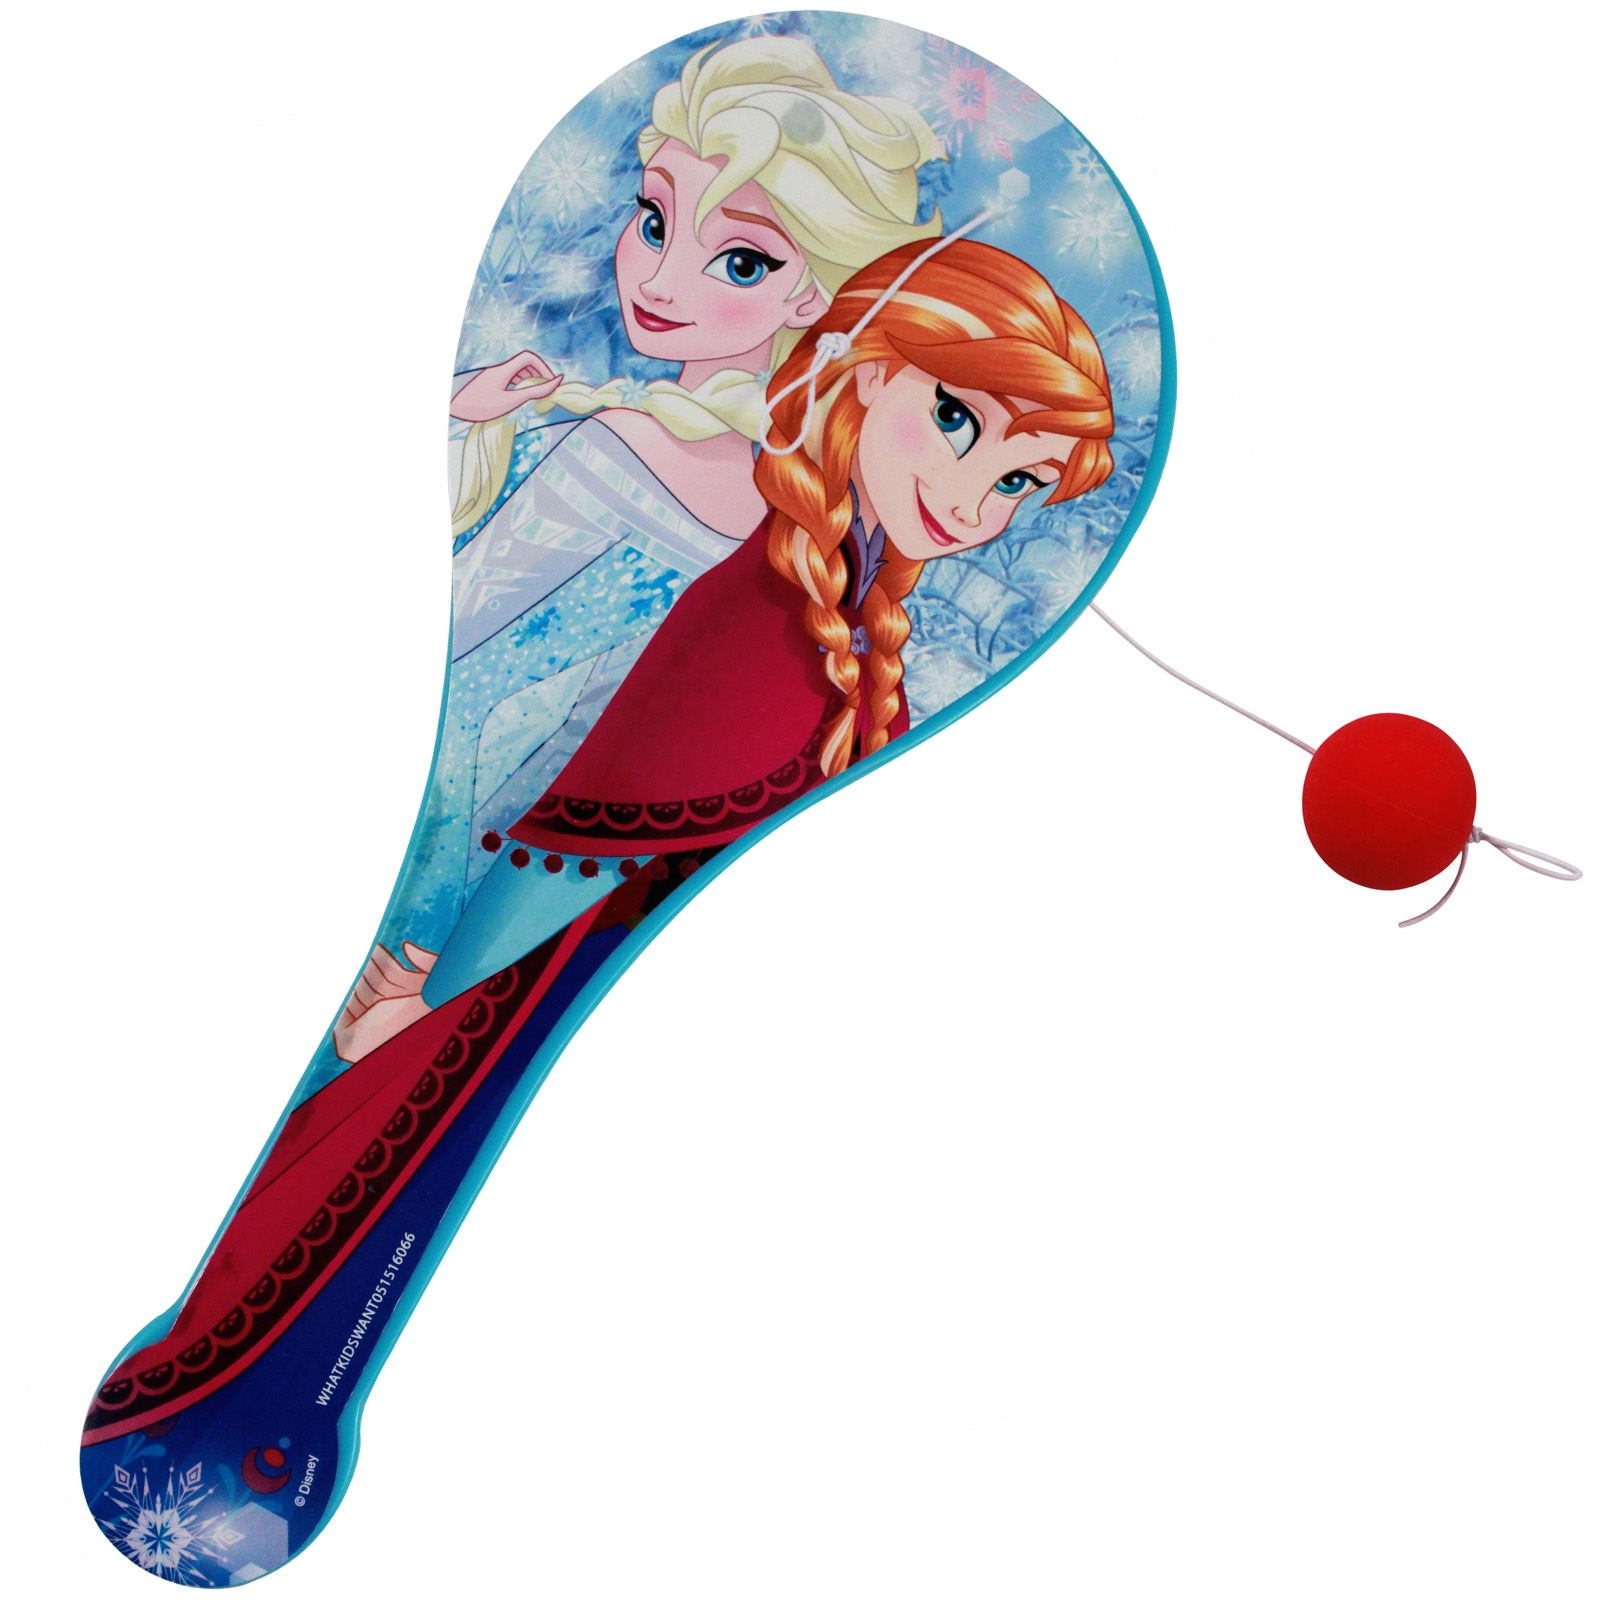 Disney Paddle Ball Toy Officially Licensed